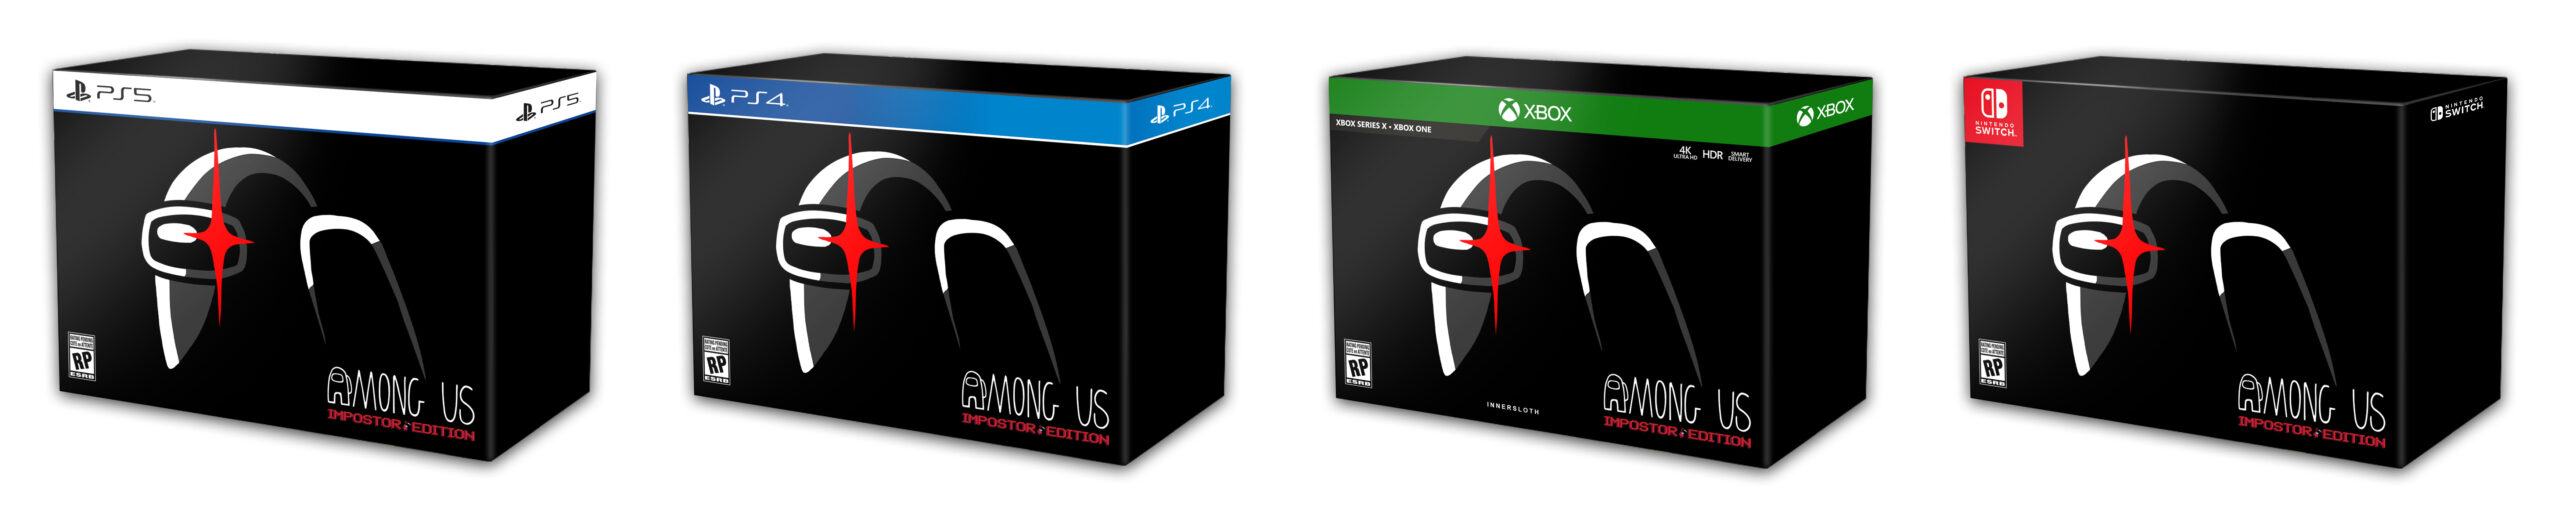 Among Us Collector's Edition annunciato per PS5, PS4, Xbox Series, Xbox One e Switch 3